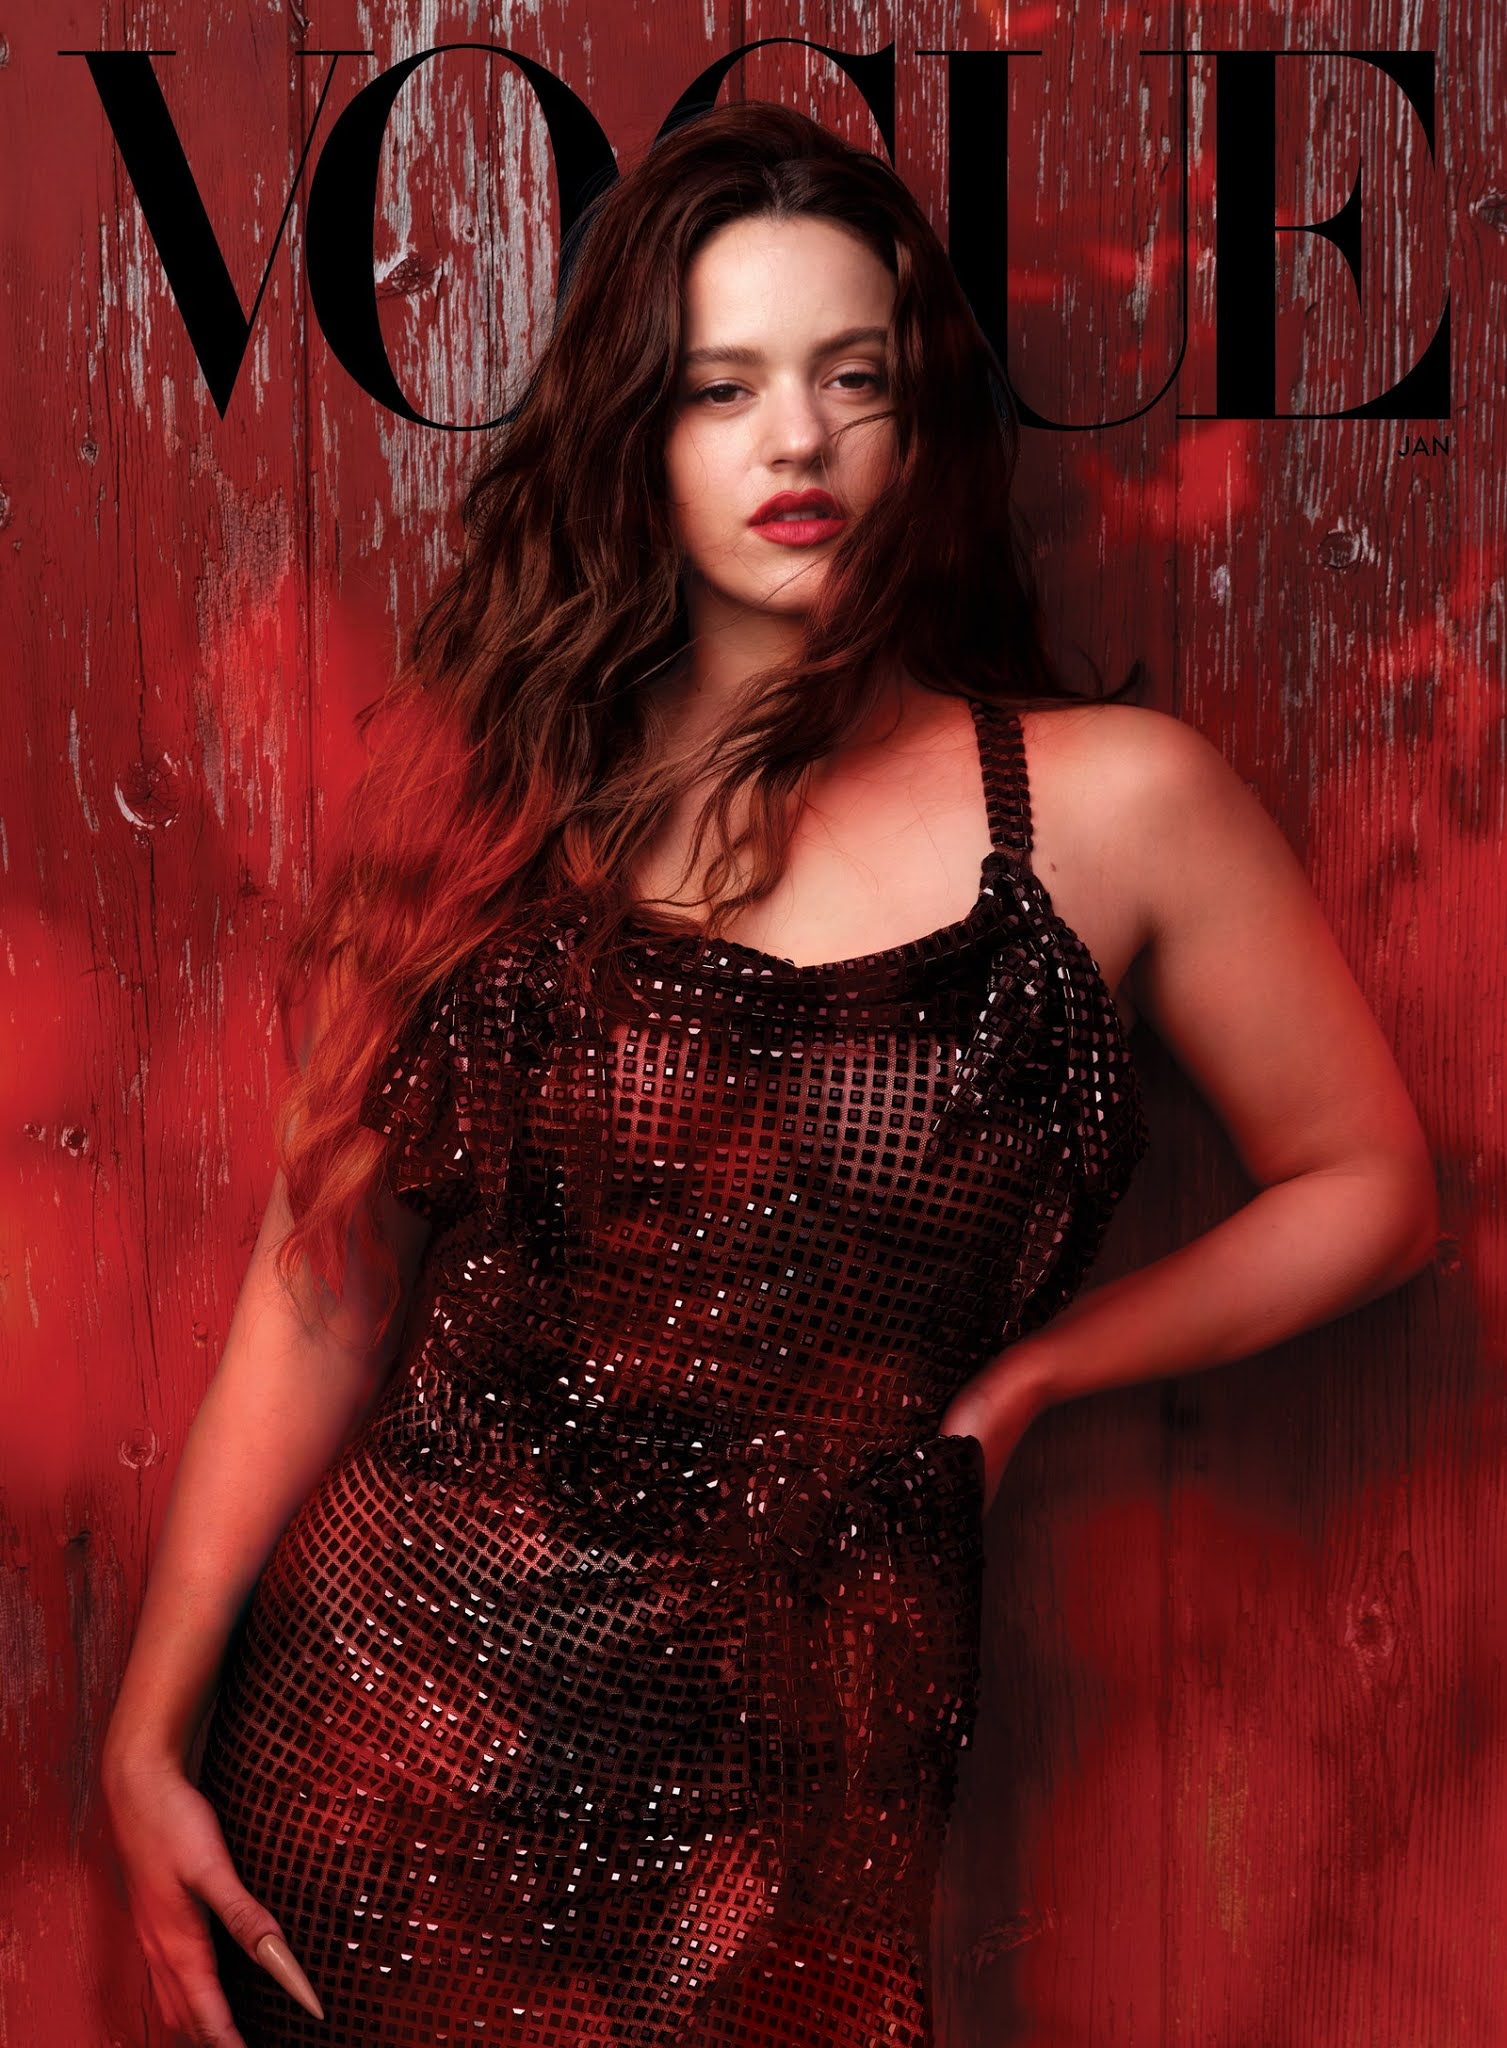 Rosalia is Vogue January 2021's fourth cover star